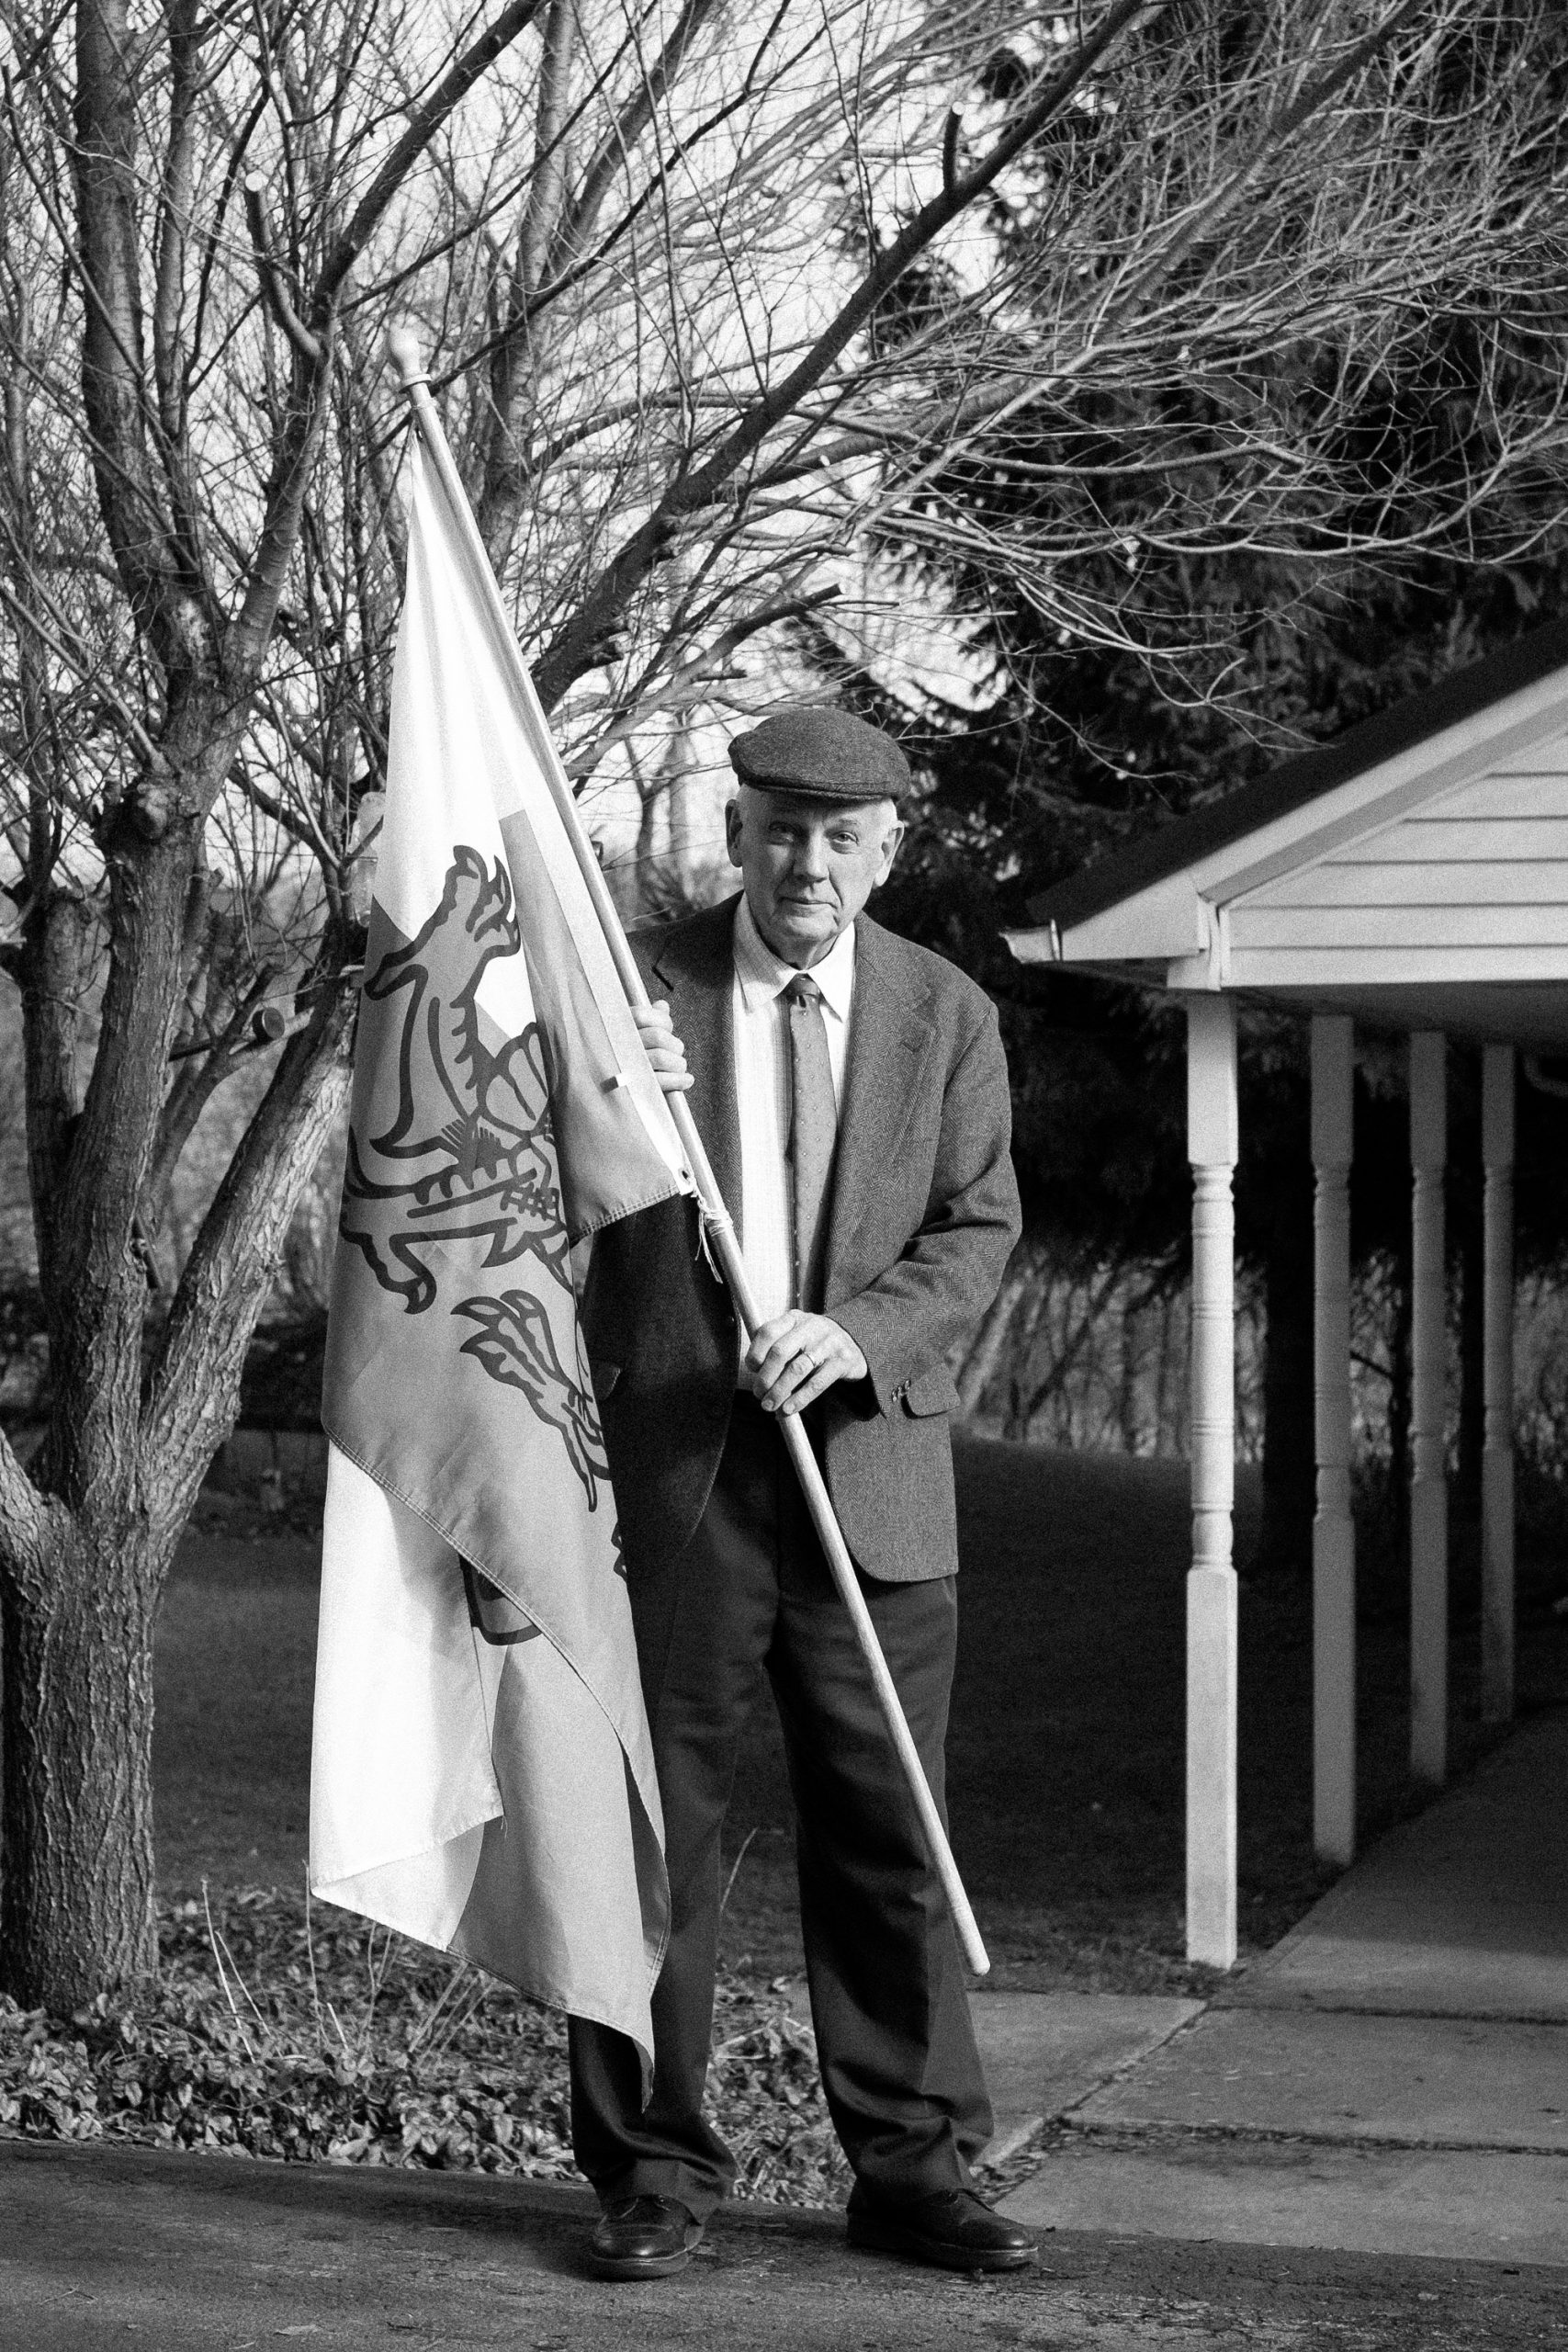 David Dudgeon, a member of the St. David's Society of Utica, poses with his Welsh flag outside his home in Herkimer, NY, USA.